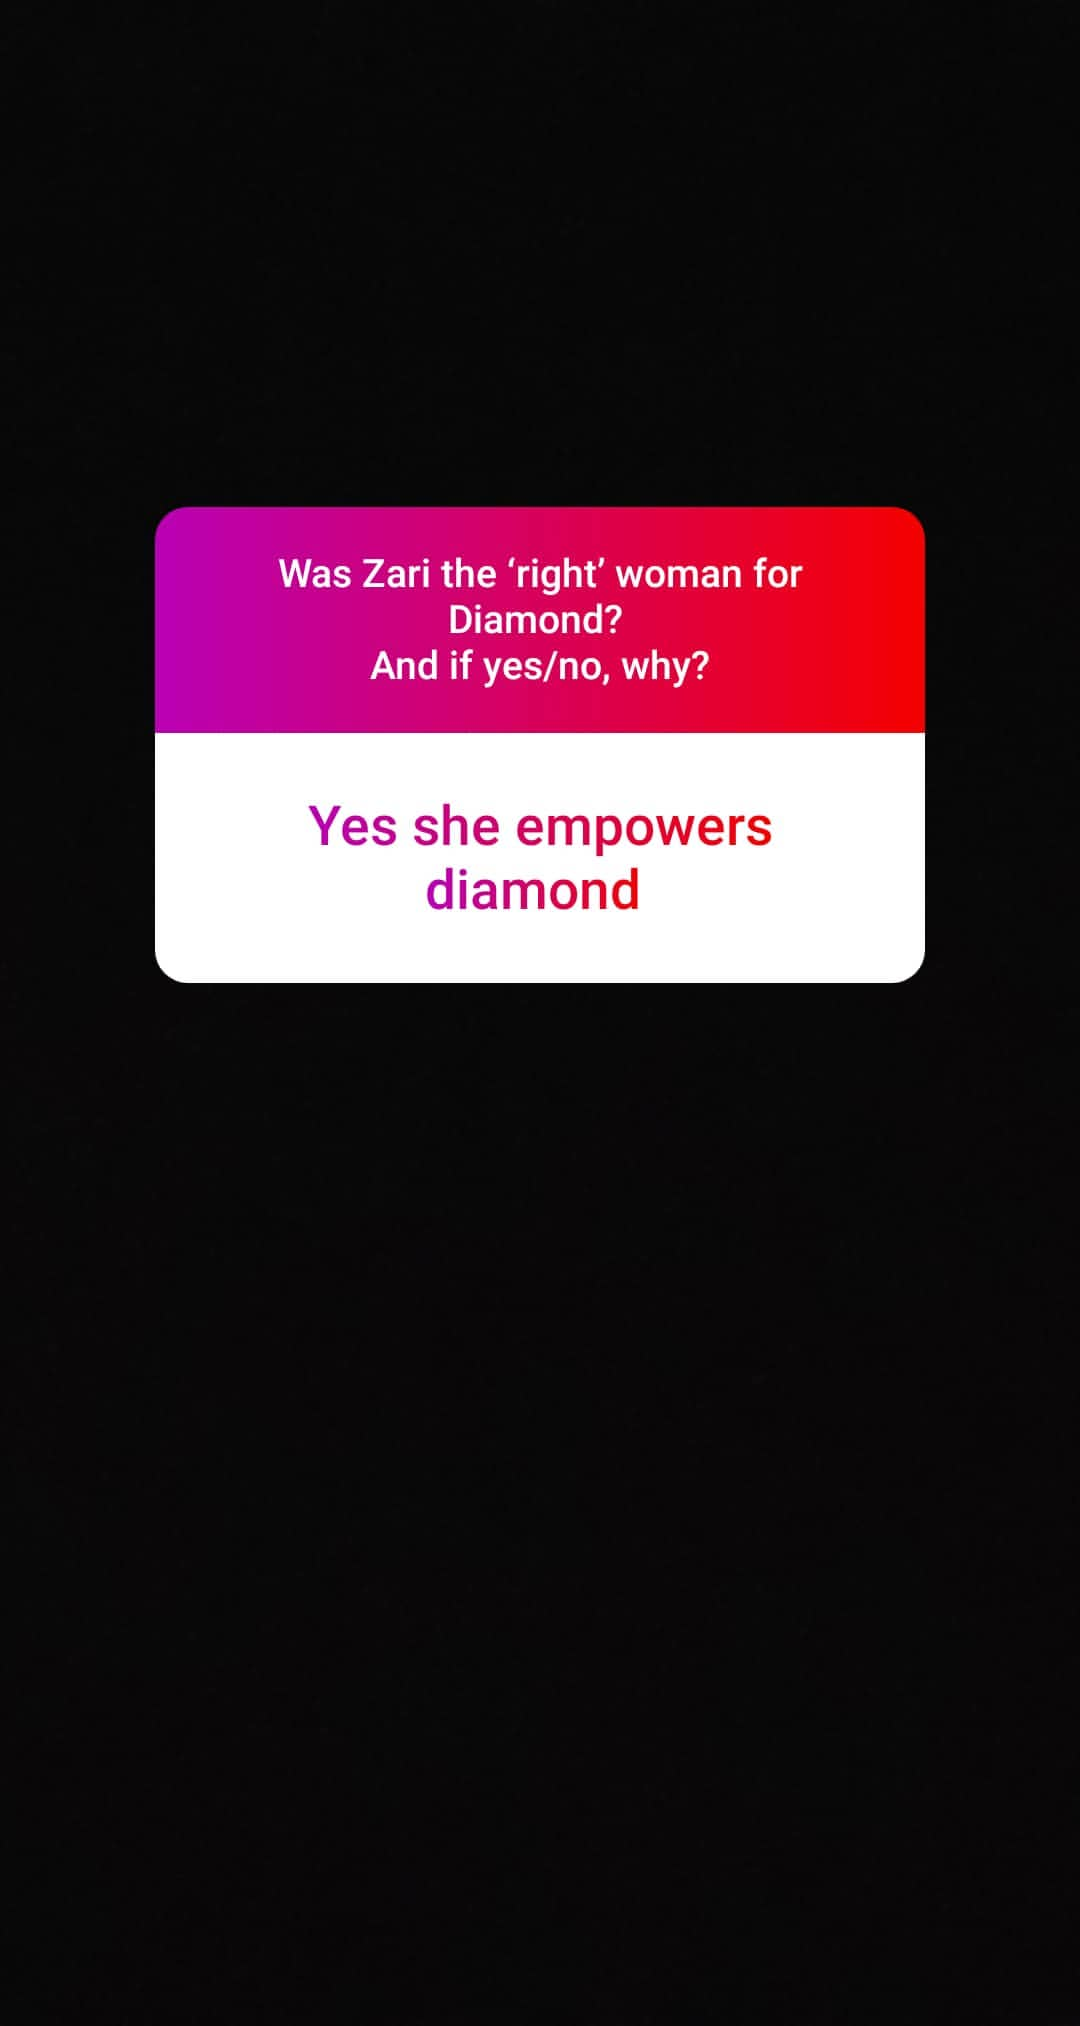 52938356 1014615765394579 871621369539797202 n - Zari is the only woman Diamond Platnumz could have settled down with – poll